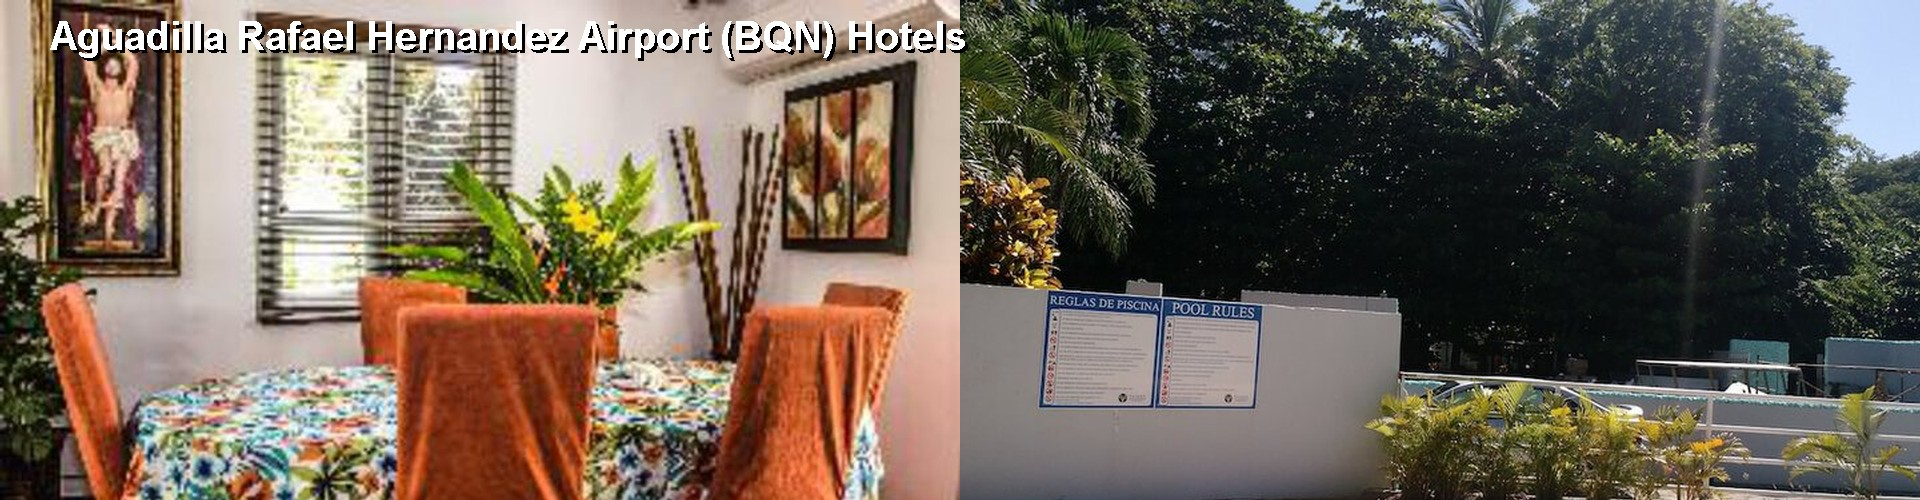 5 Best Hotels near Aguadilla Rafael Hernandez Airport (BQN)